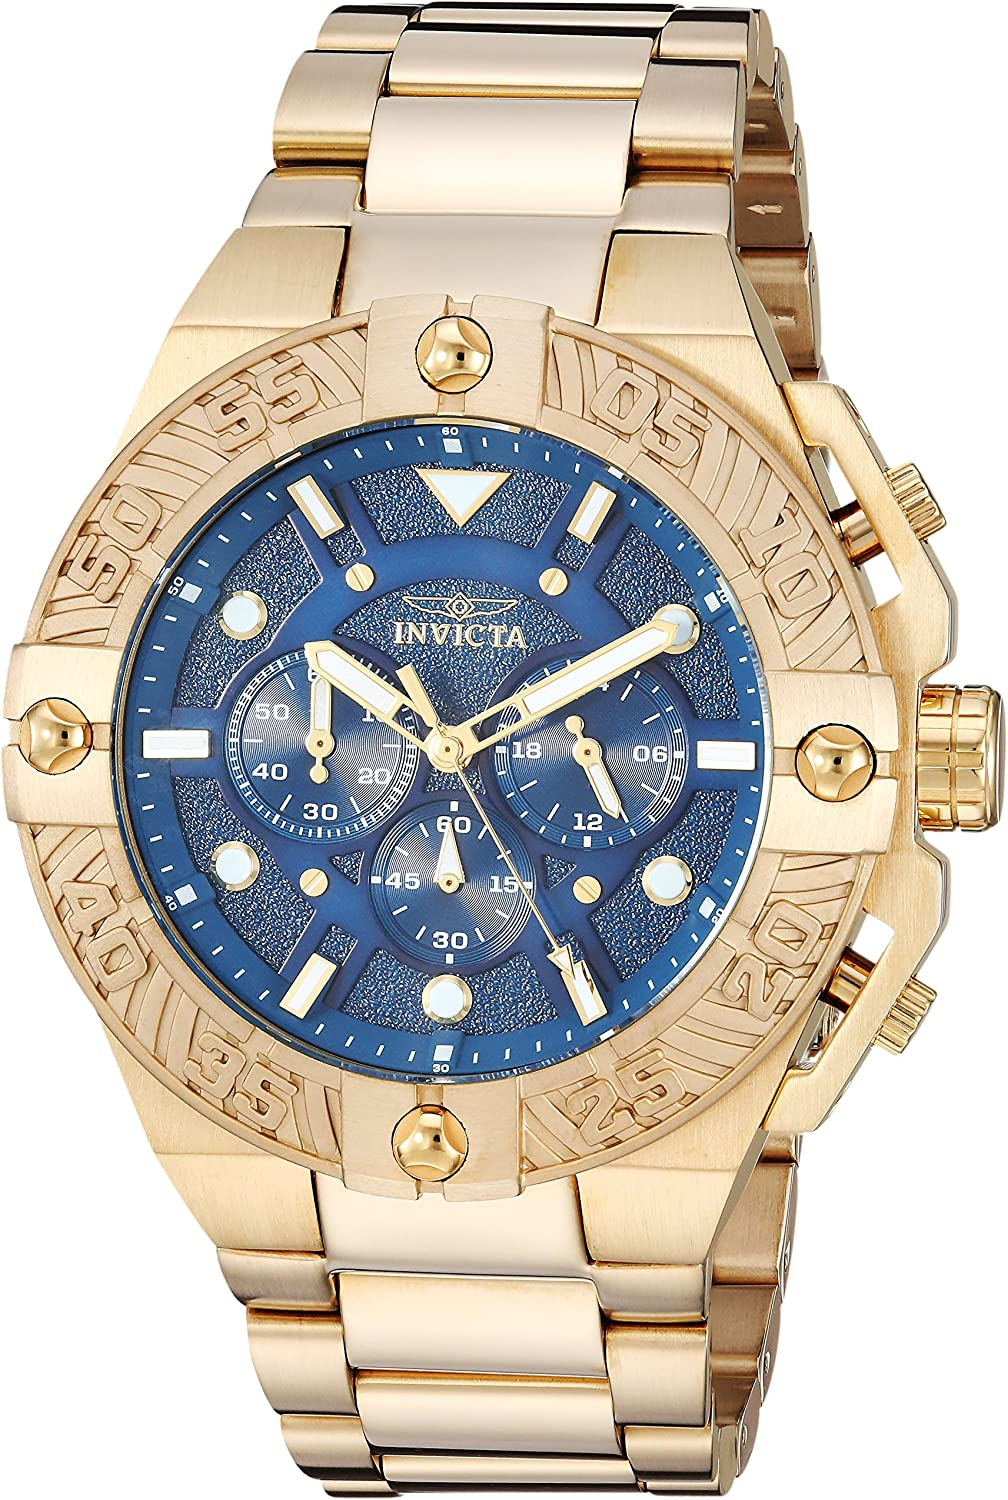 Invicta Men s Pro Diver Quartz Watch with Stainless-Steel Strap, Gold, 27 Model 25829